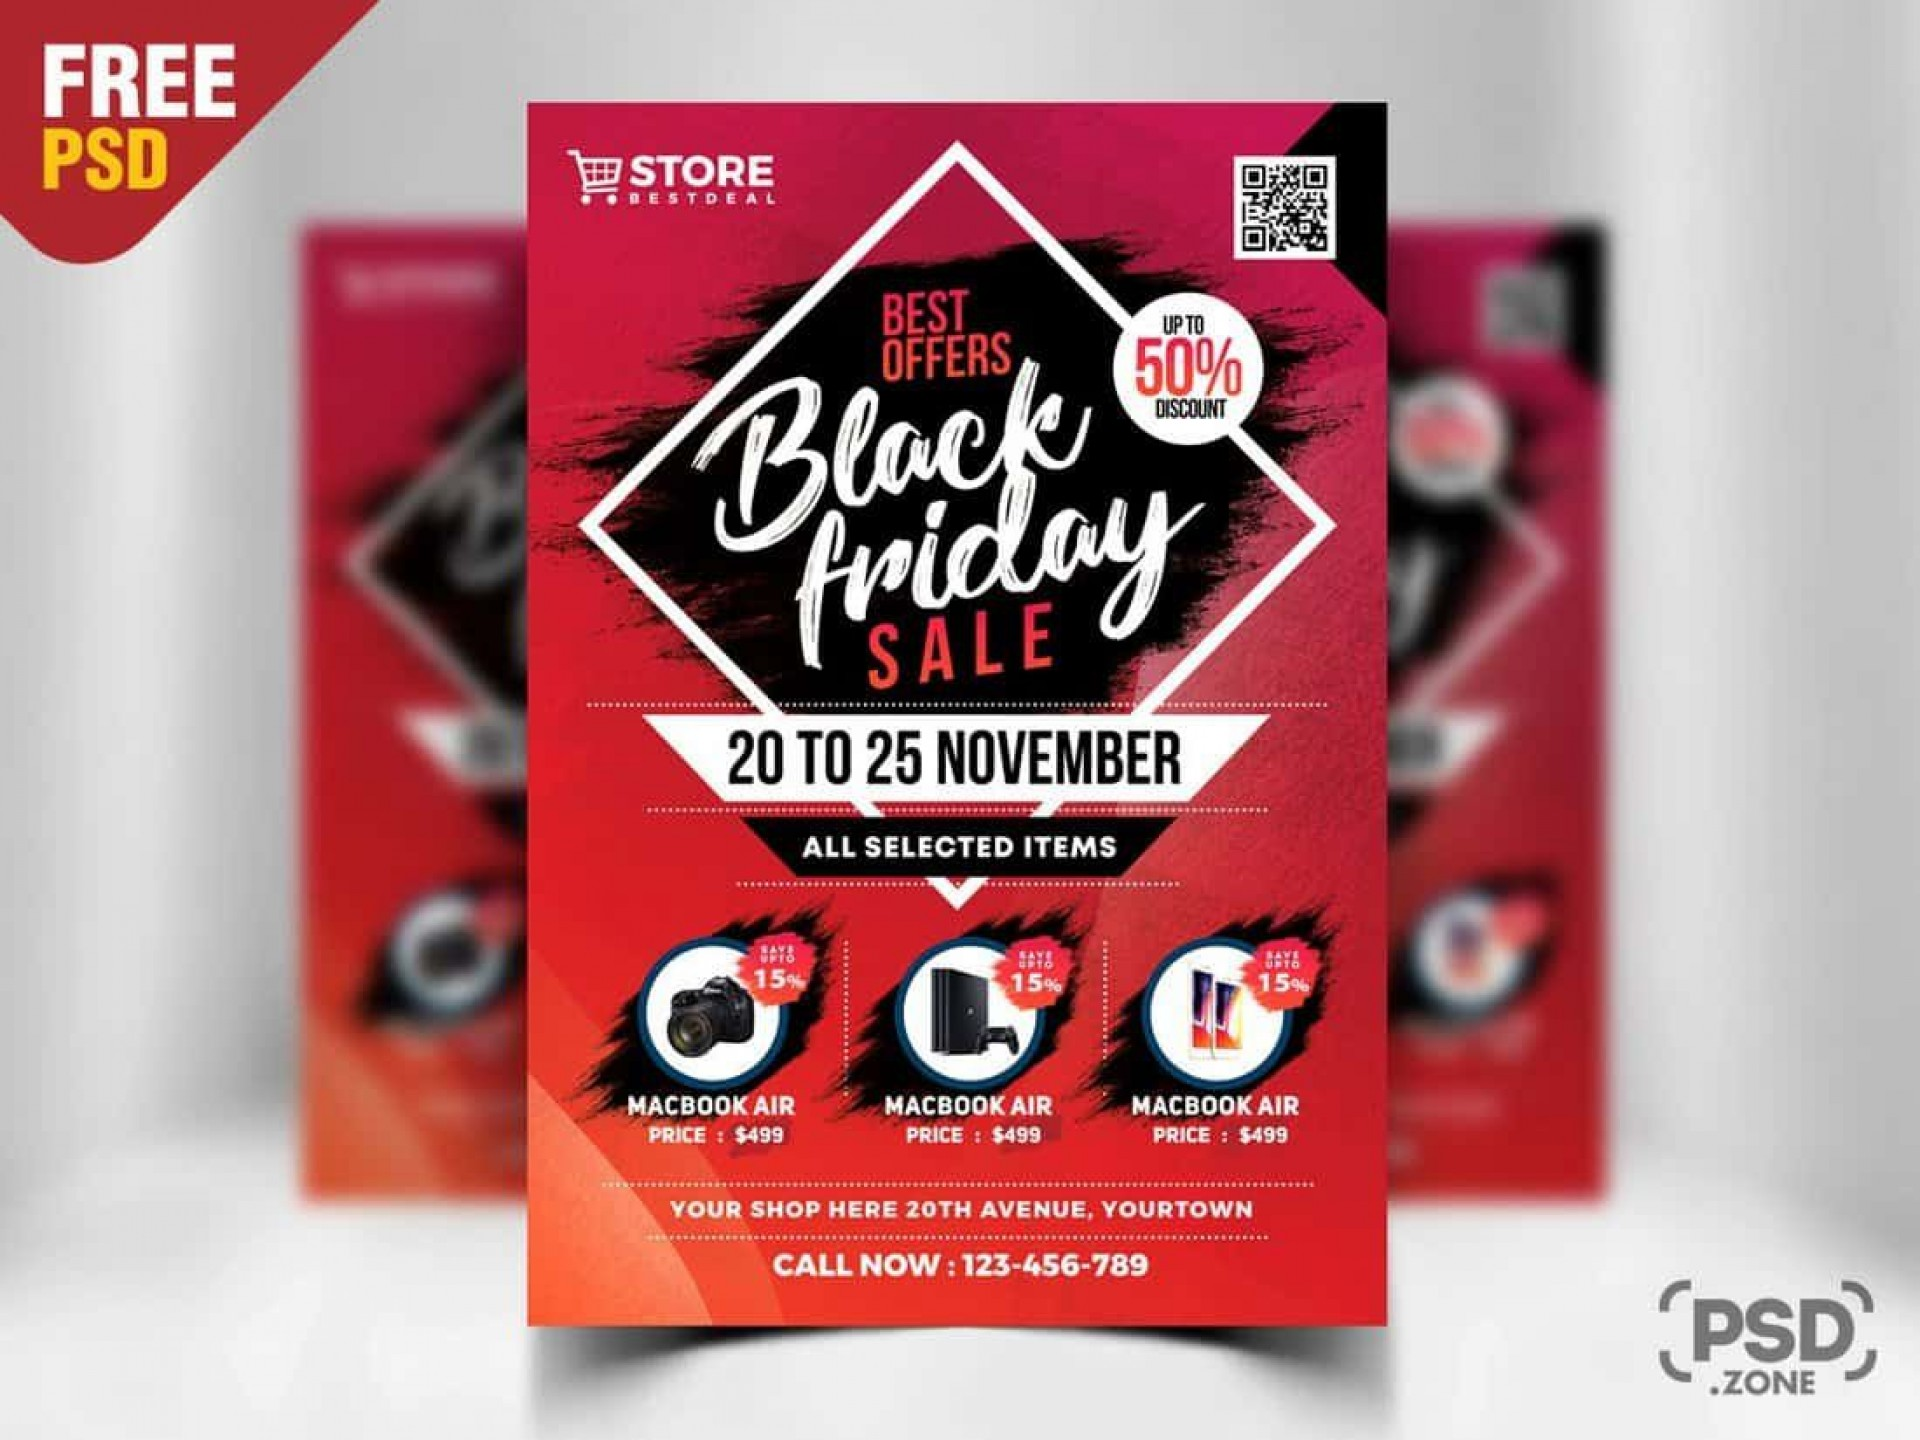 003 Top Free Flyer Design Template High Def  Indesign For Word Microsoft1920